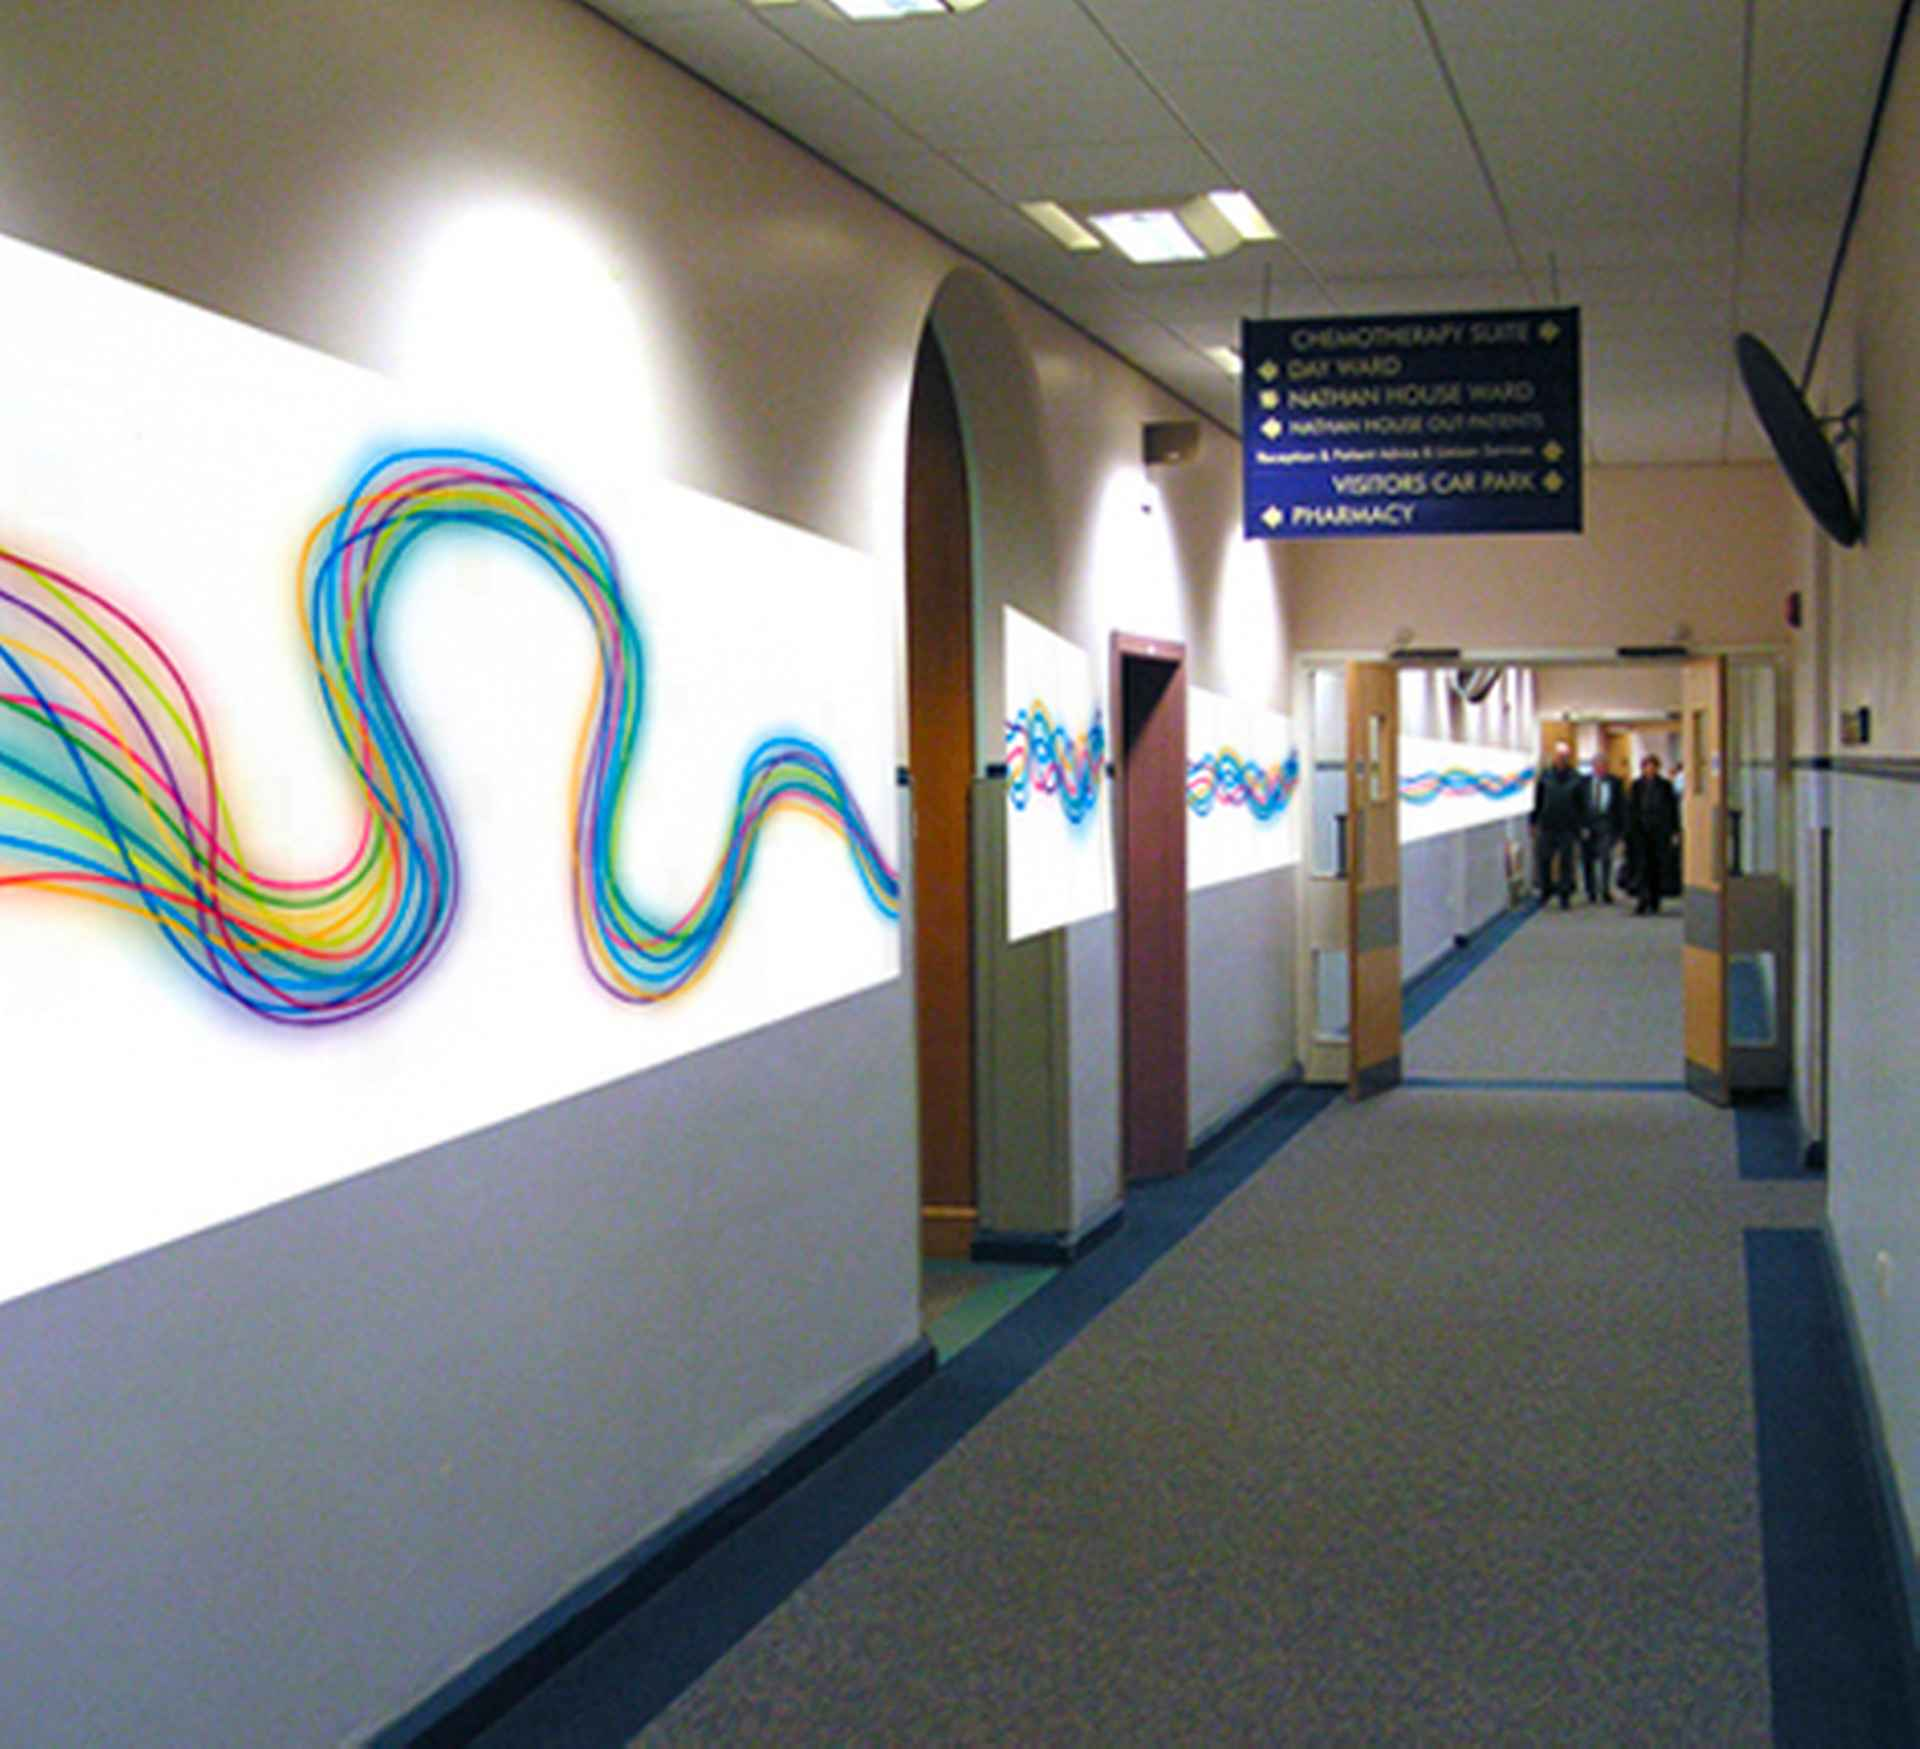 Proposed vinyl artwork to 'energise' the corridors by The Christie, Manchester